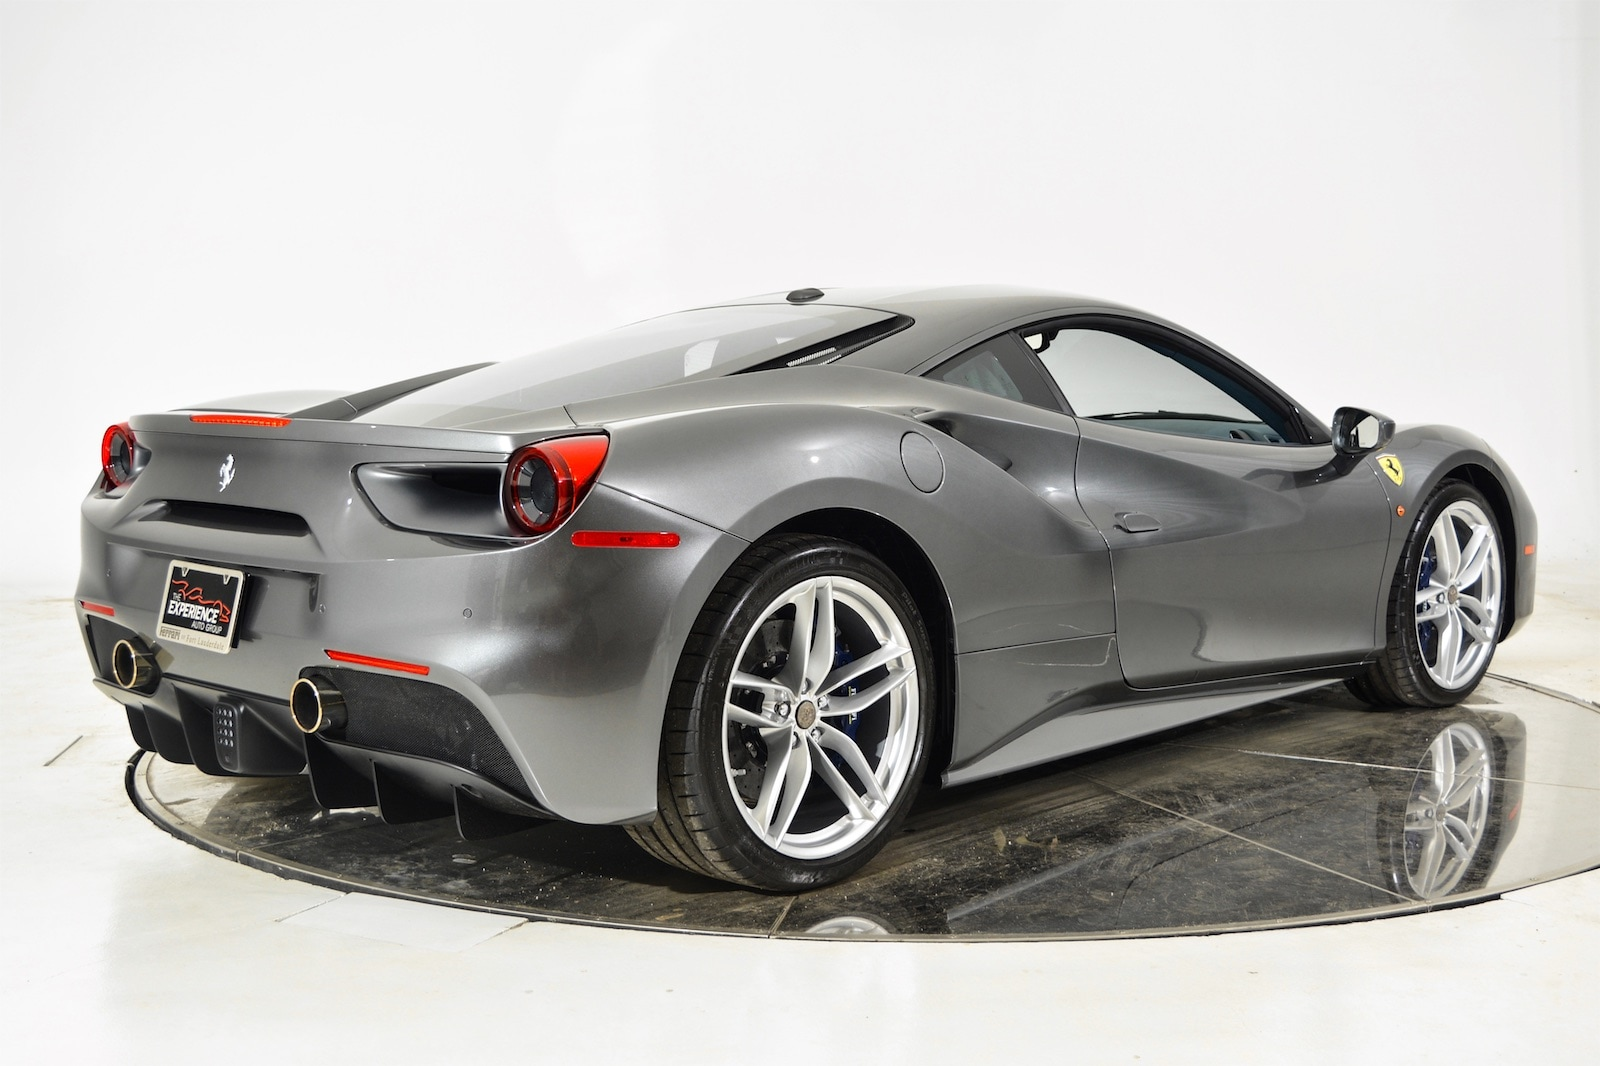 2016 ferrari 488 gtb coupe for sale in fort lauderdale fl at maserati. Cars Review. Best American Auto & Cars Review